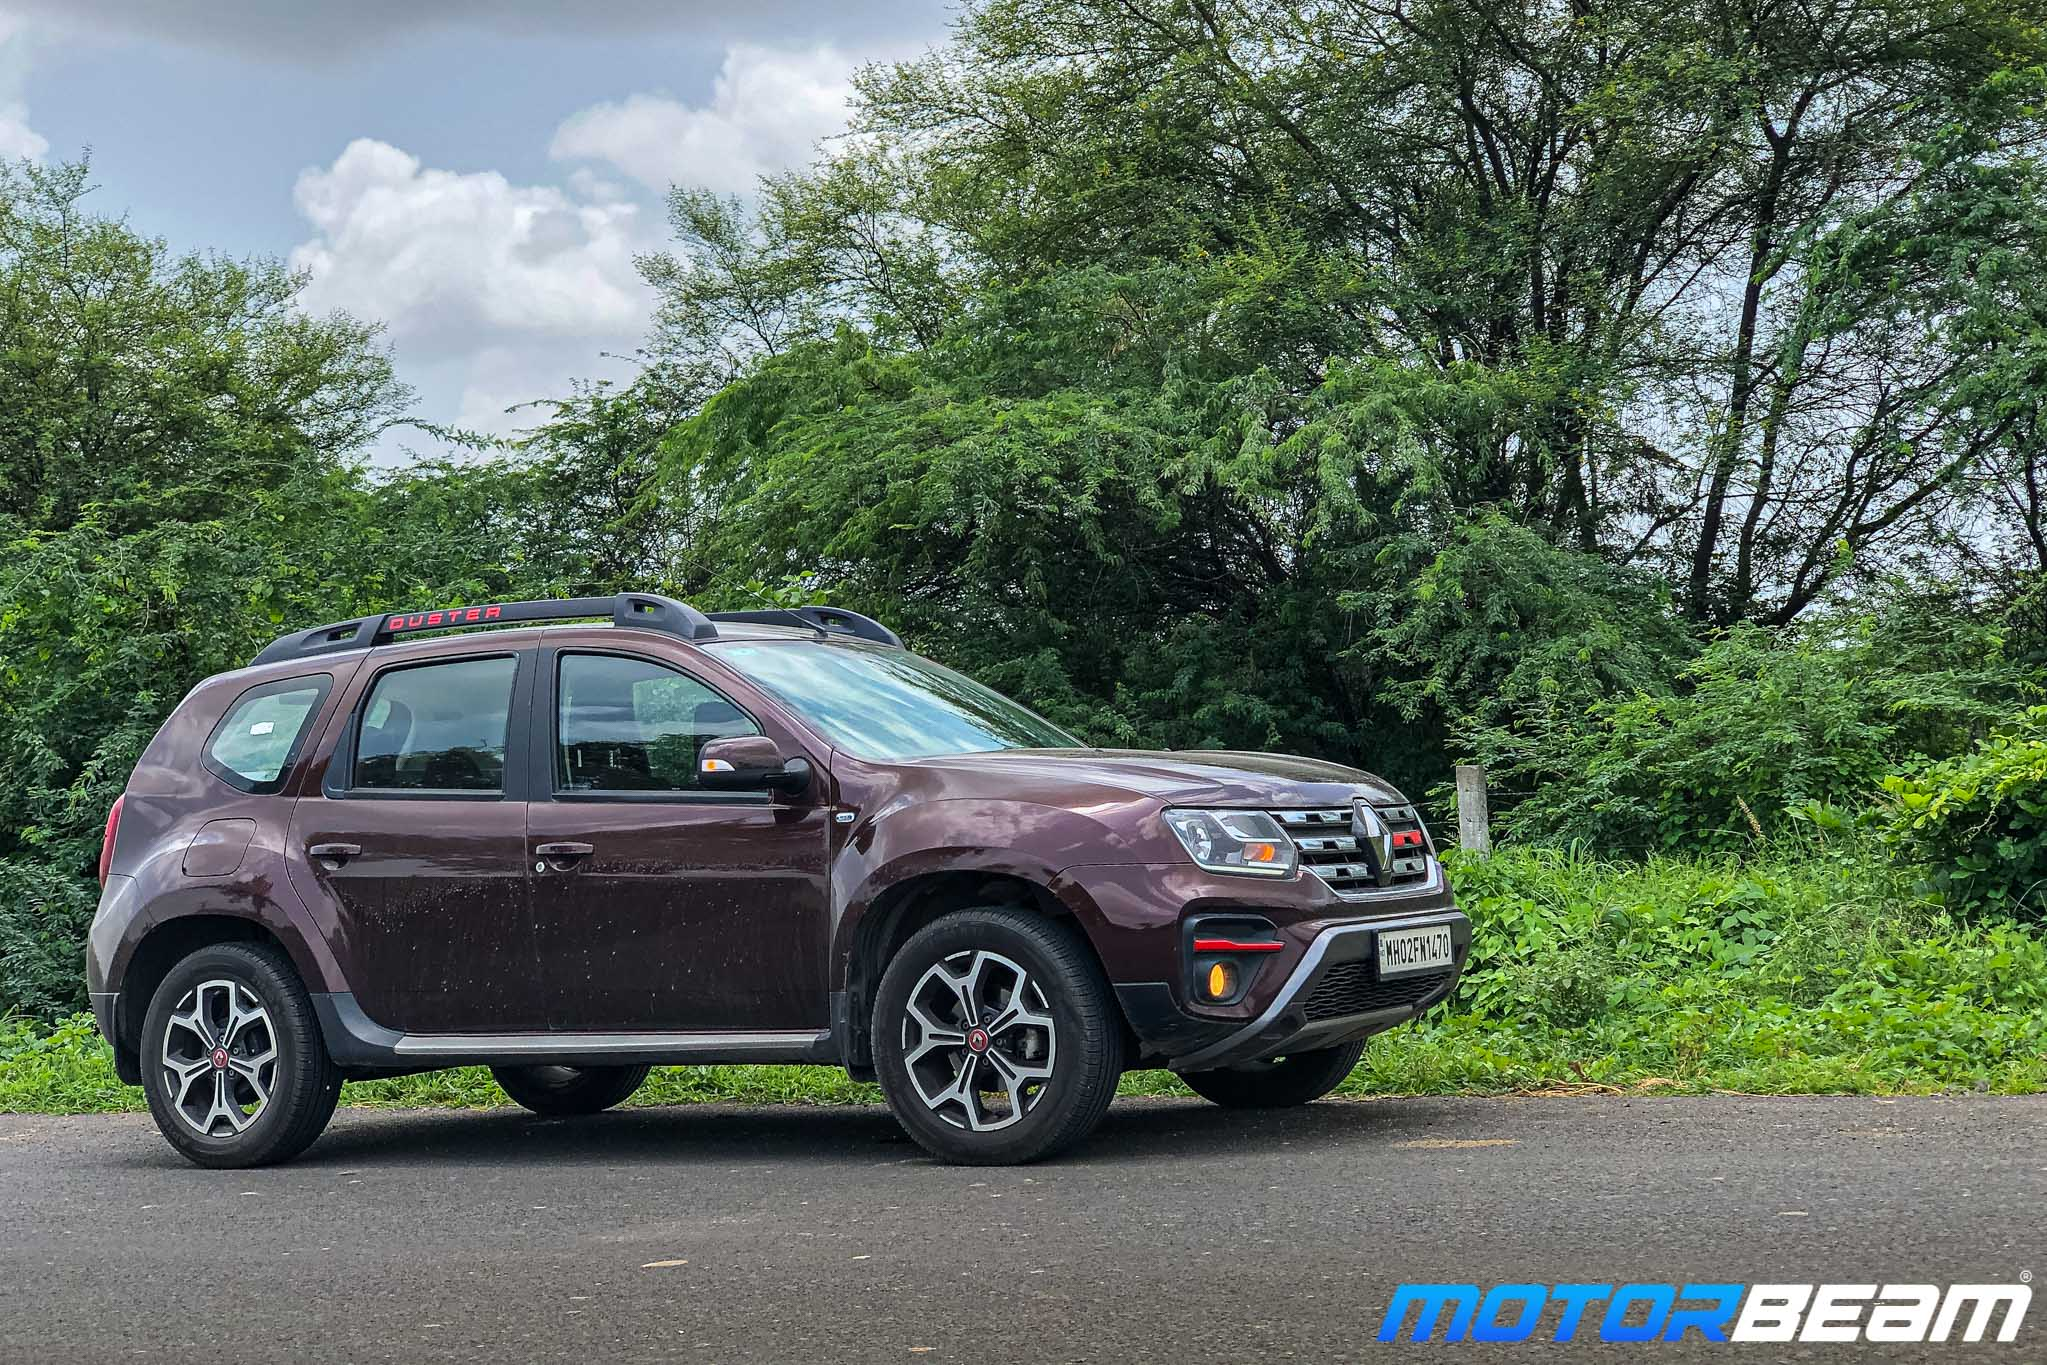 Renault-Duster-Turbo-Long-Term-3